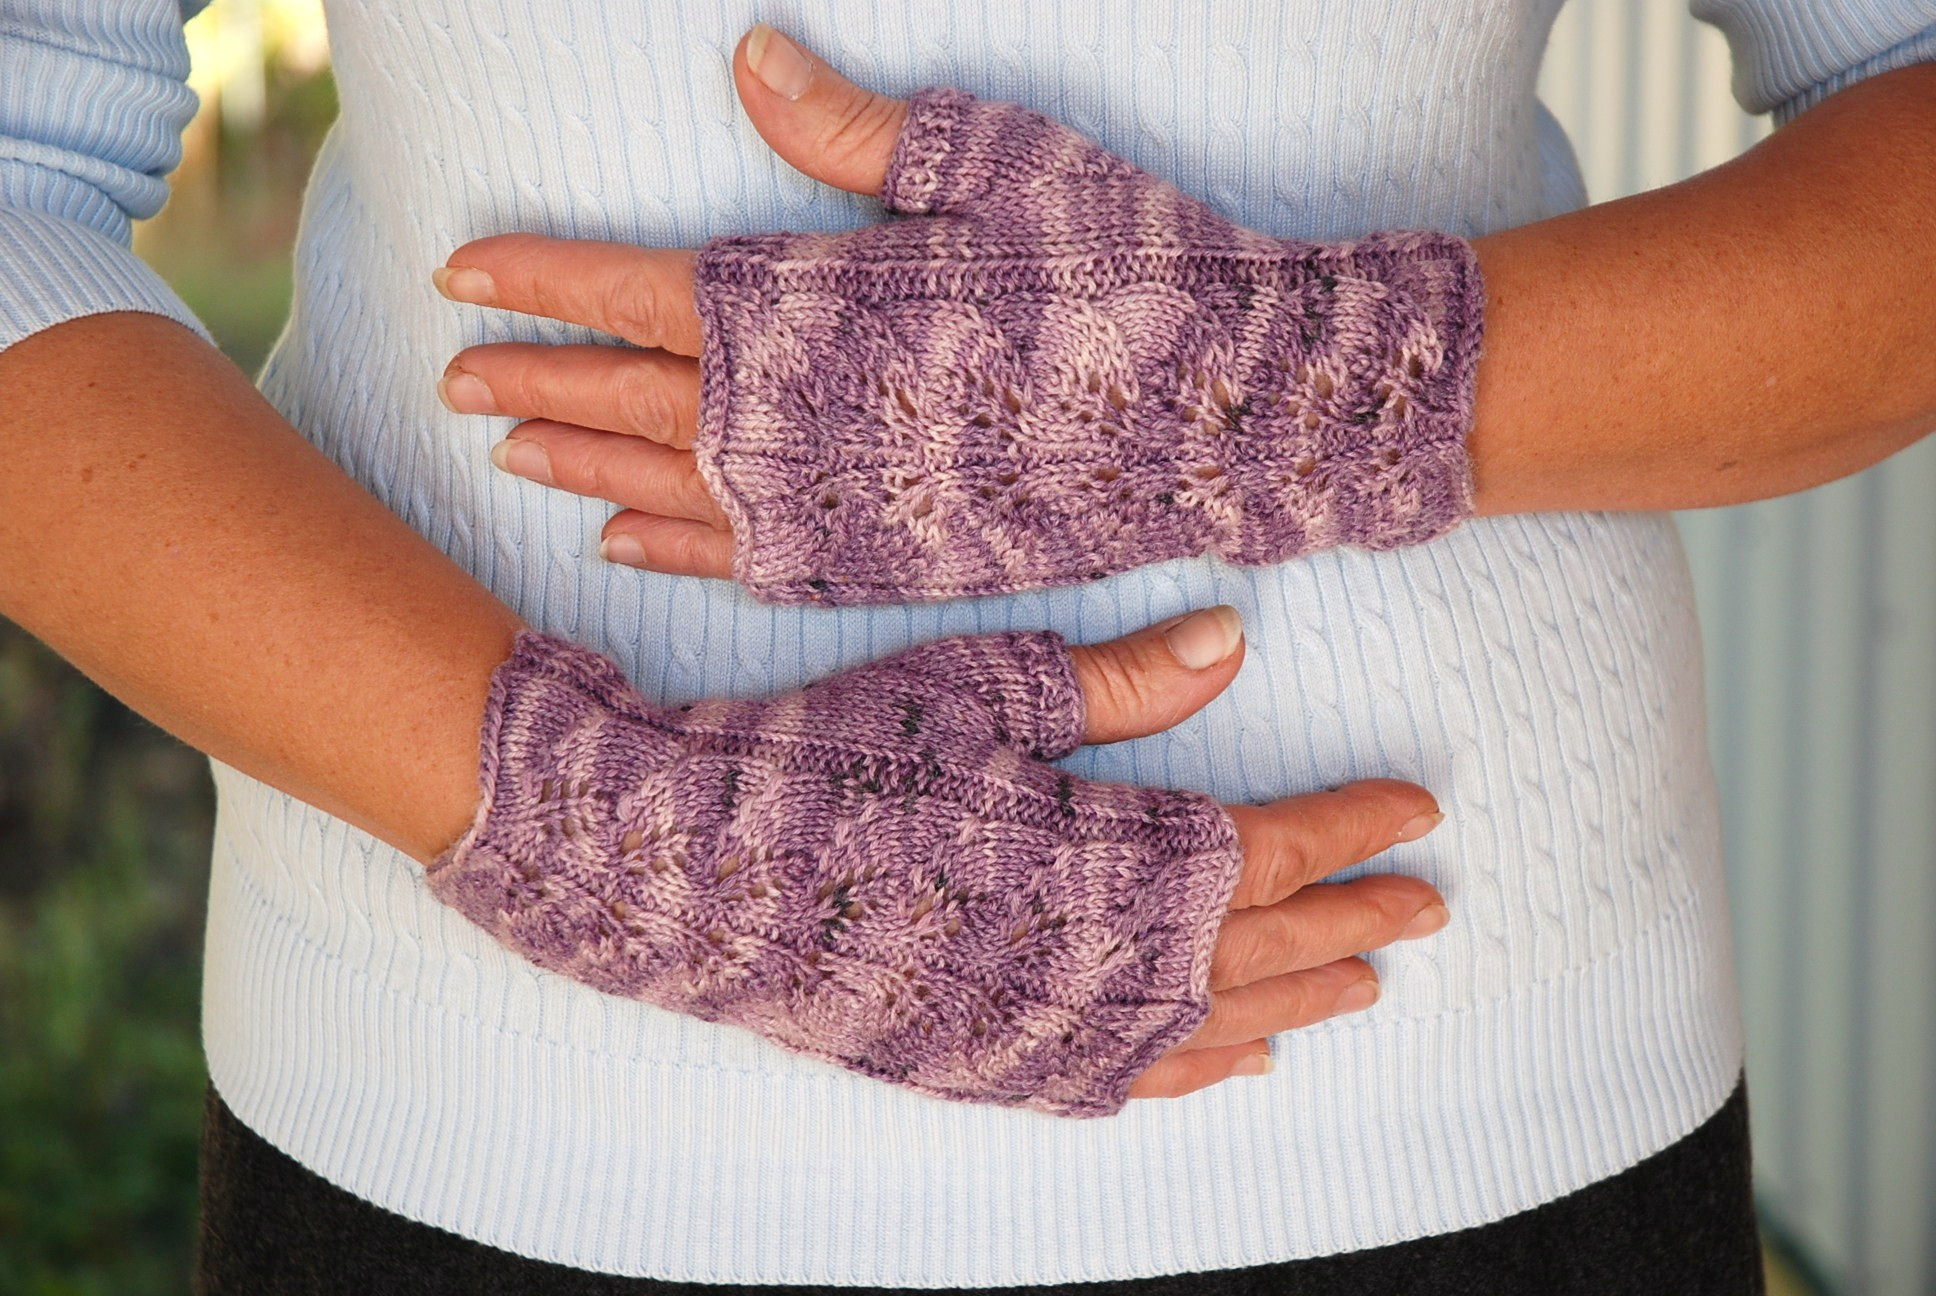 Knit Fingerless Gloves New Knitting Patterns Galore Twin Leaf Fingerless Gloves Of Gorgeous 47 Pics Knit Fingerless Gloves